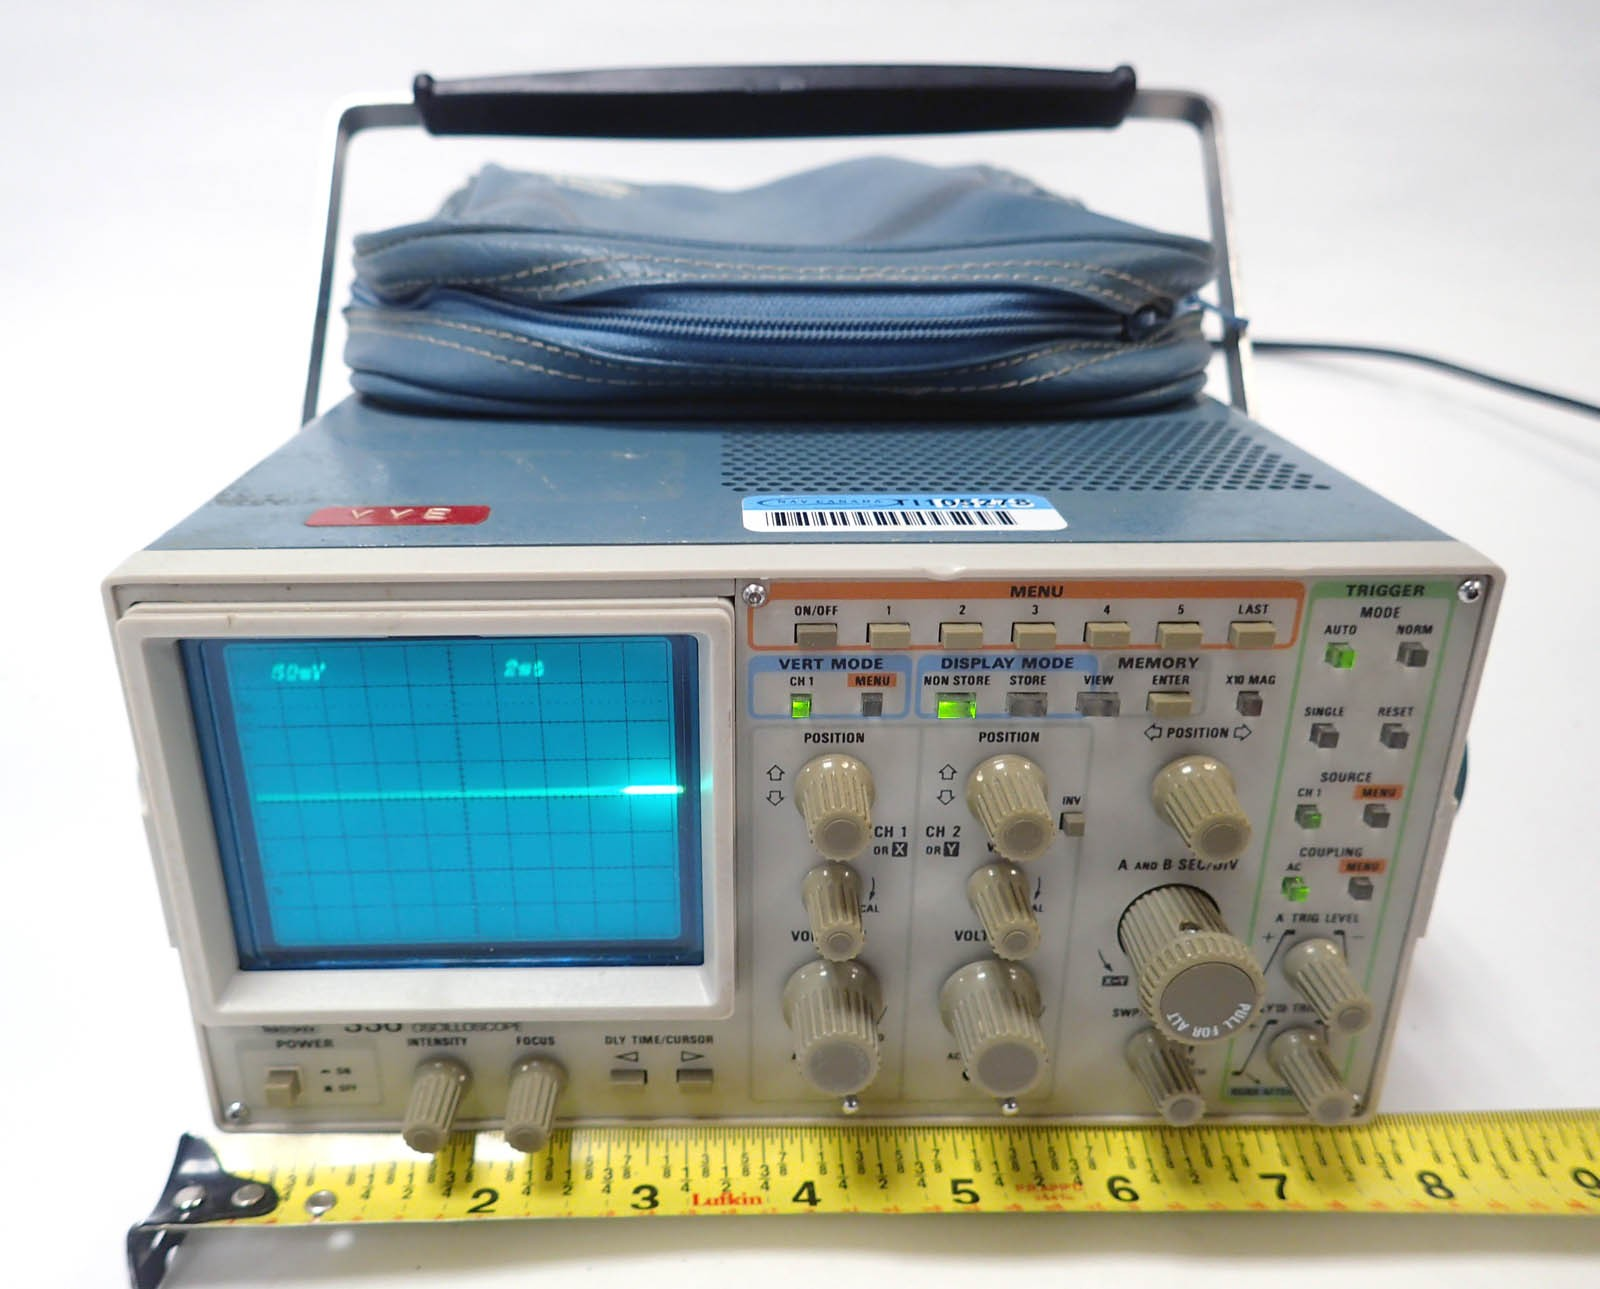 Sony Tektronix 336 Oscilloscope 50 Mhz Dual Trace Digital Storage Adapter With Pouch